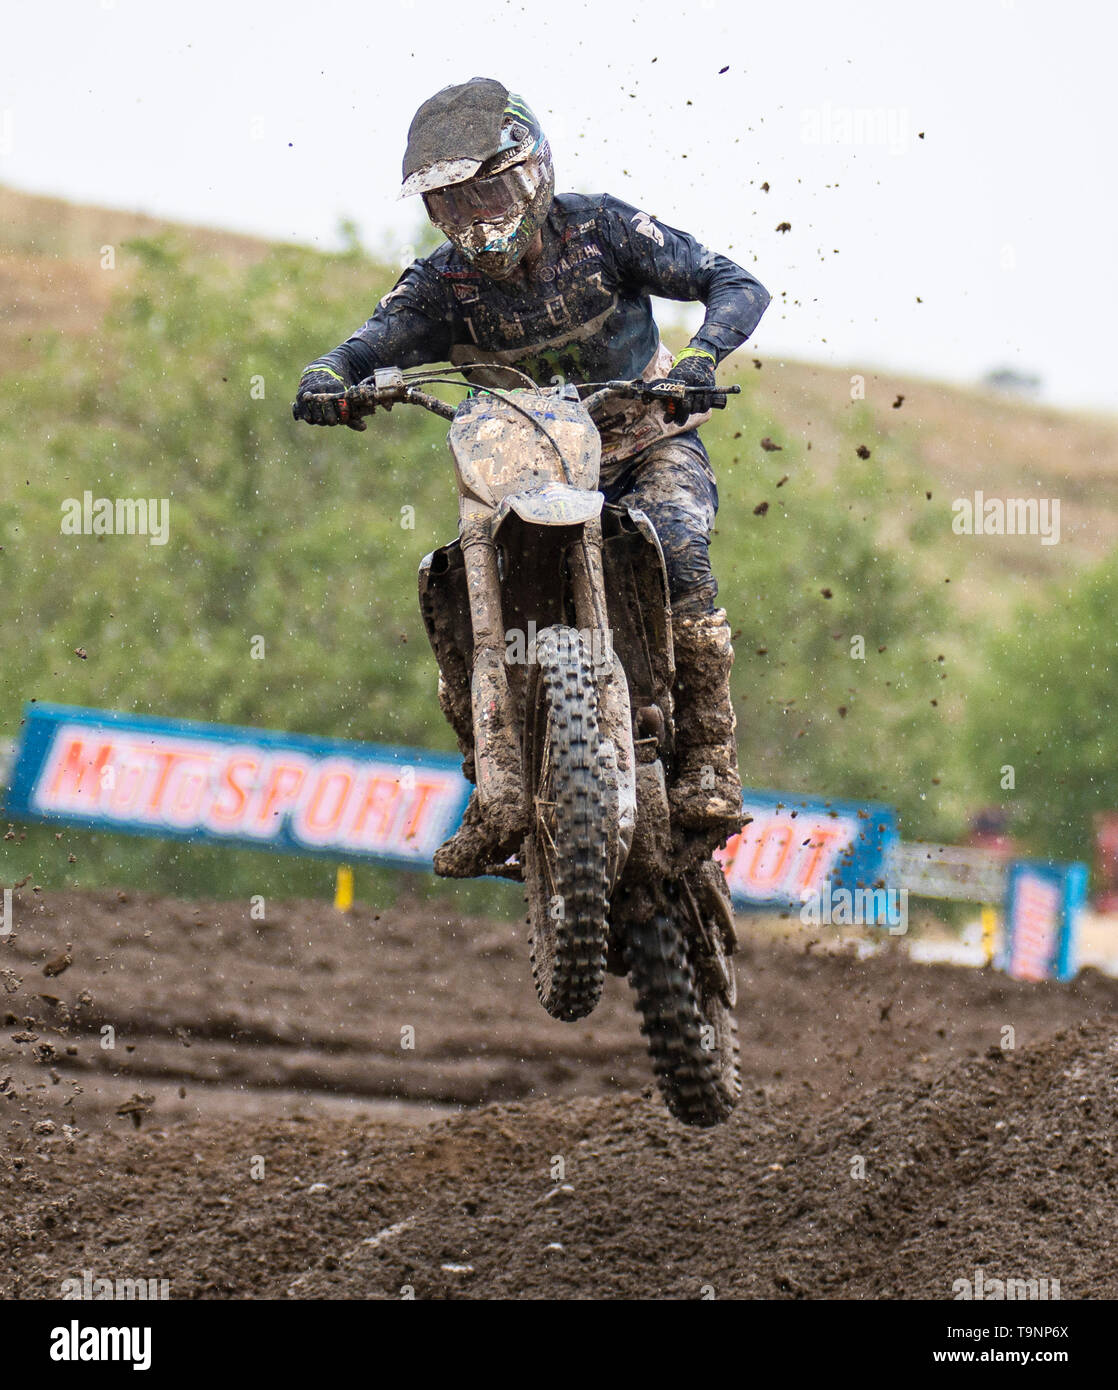 Rancho Cordova, CA U.S. 18th May, 2019. A. : # 34 Dylan Ferrandis coming out of section 16 during the Lucas Oil Pro Motocross 250 Championship at Hangtown Motocross Classic Rancho Cordova, CA Thurman James/CSM/Alamy Live News - Stock Image